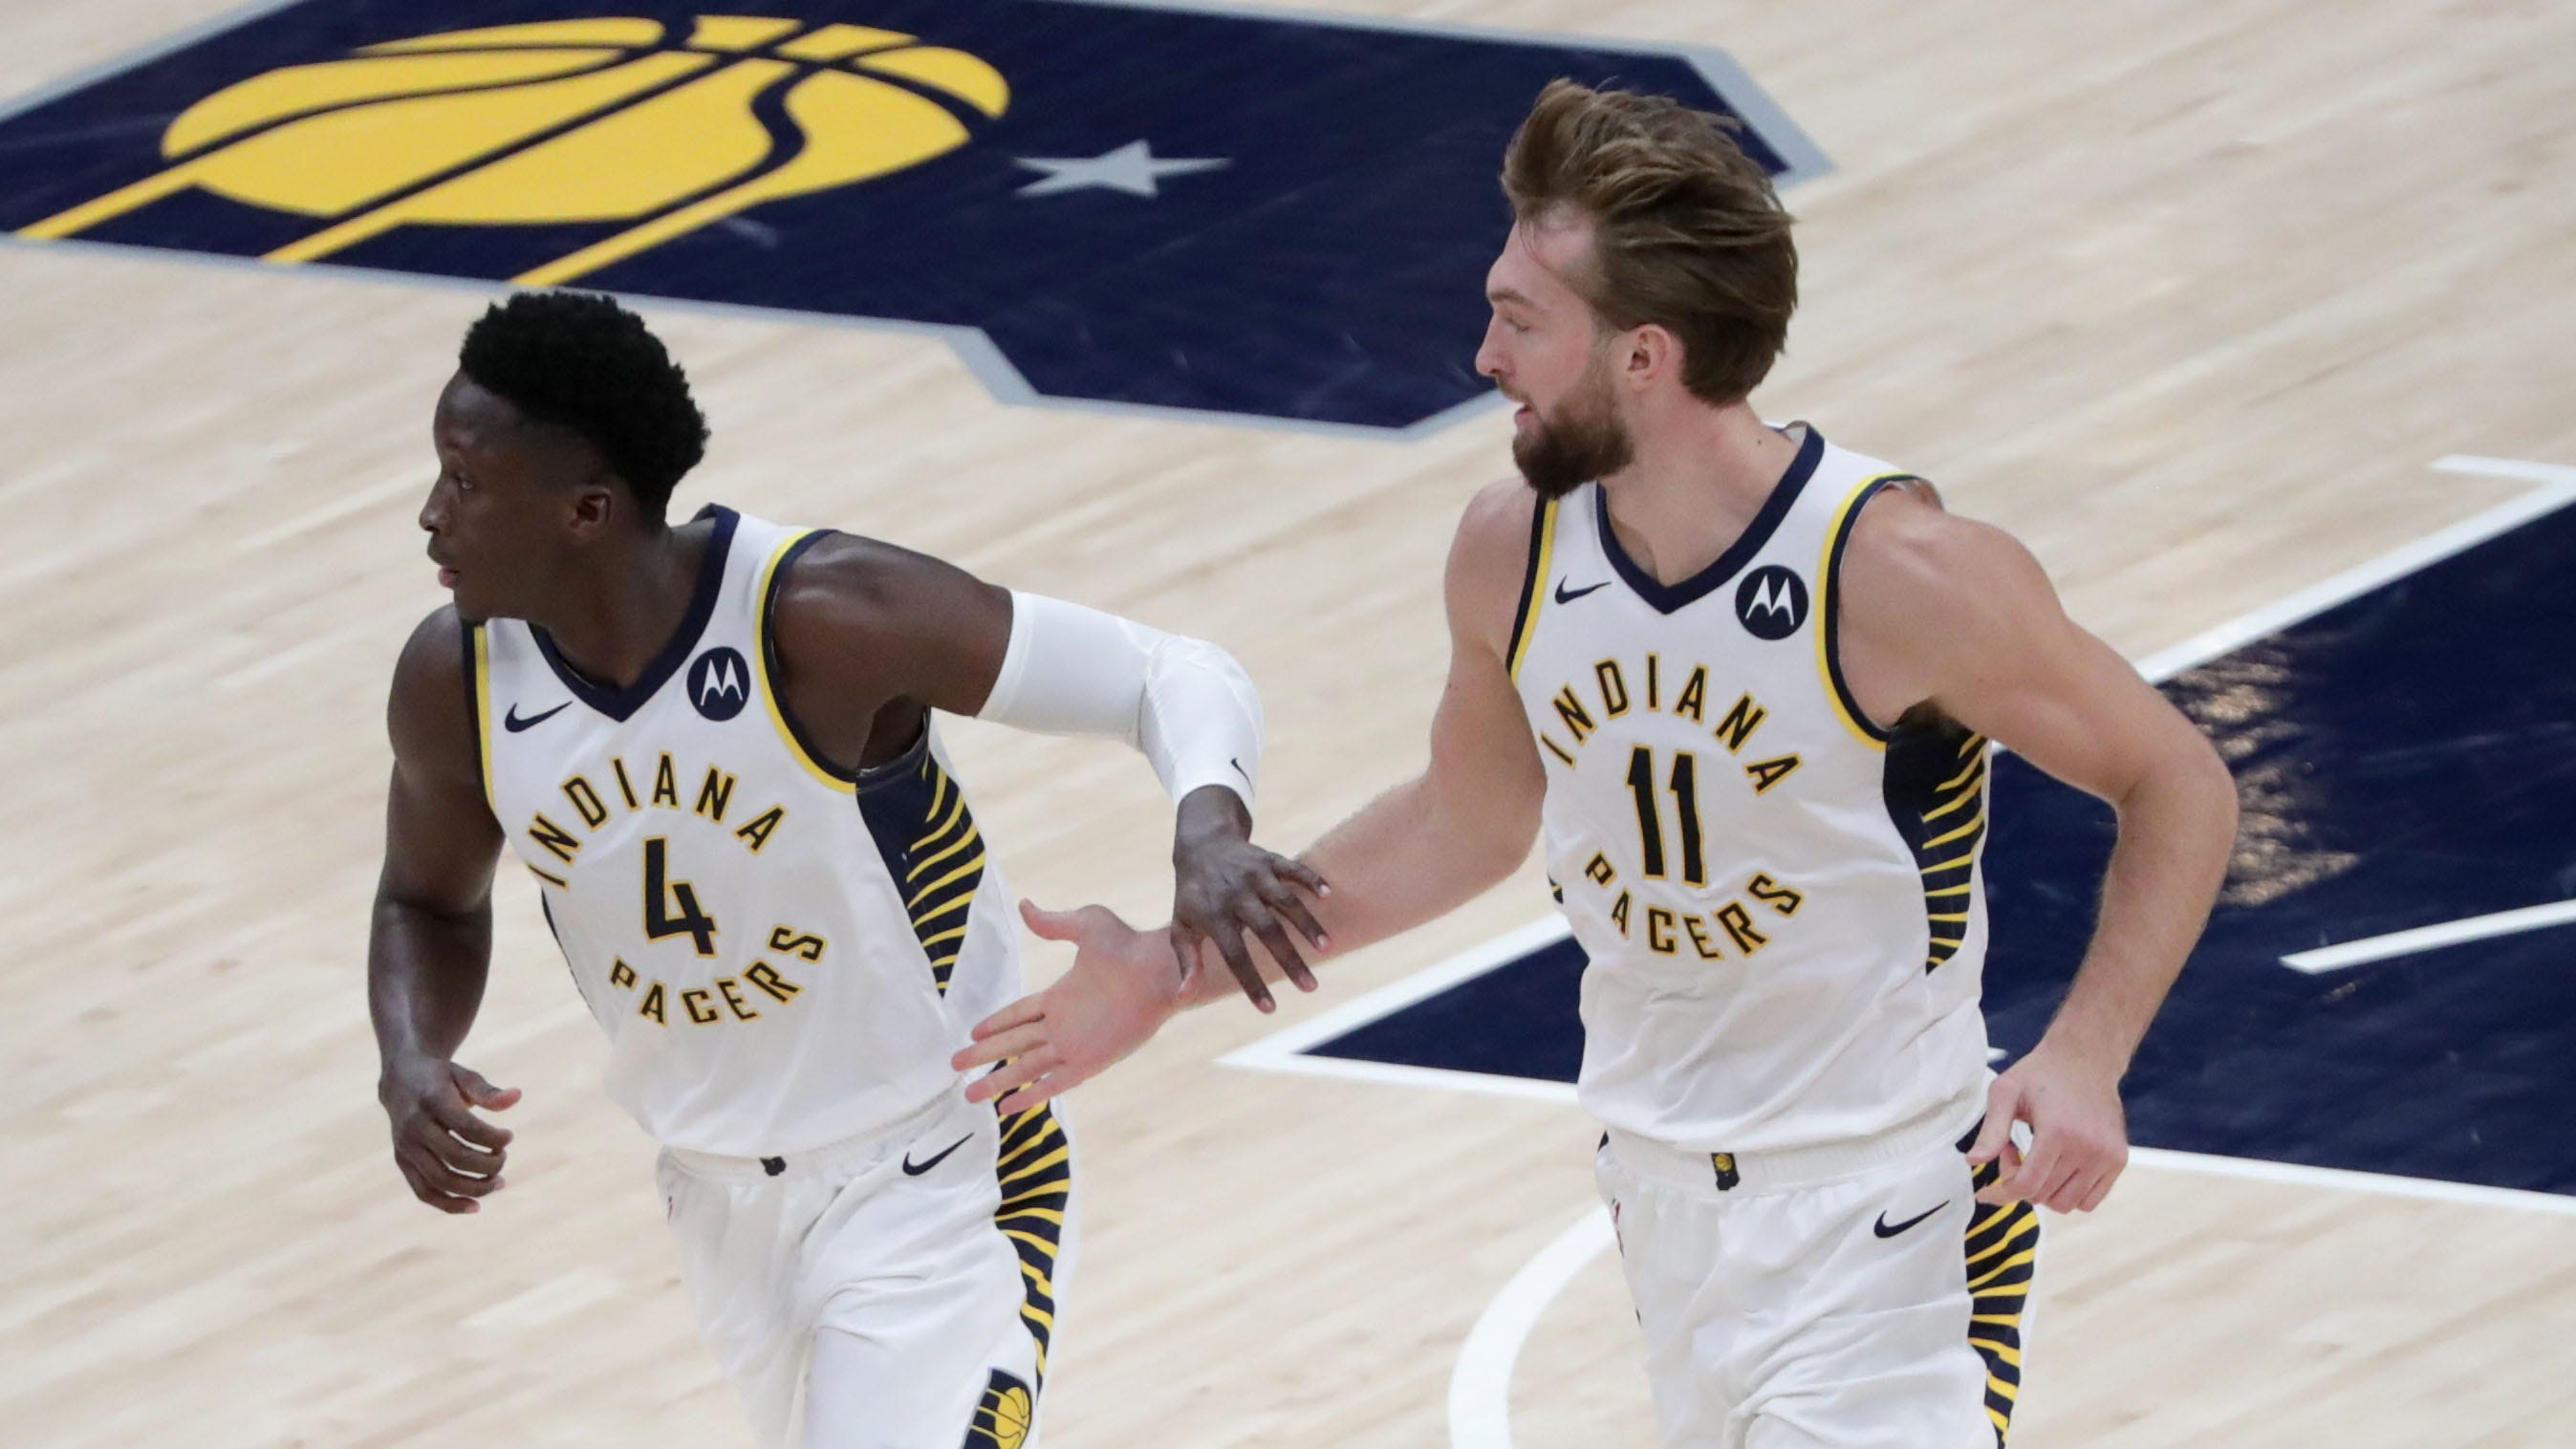 Pacers vs. Celtics: Indiana suffers first loss, blows 17-point lead